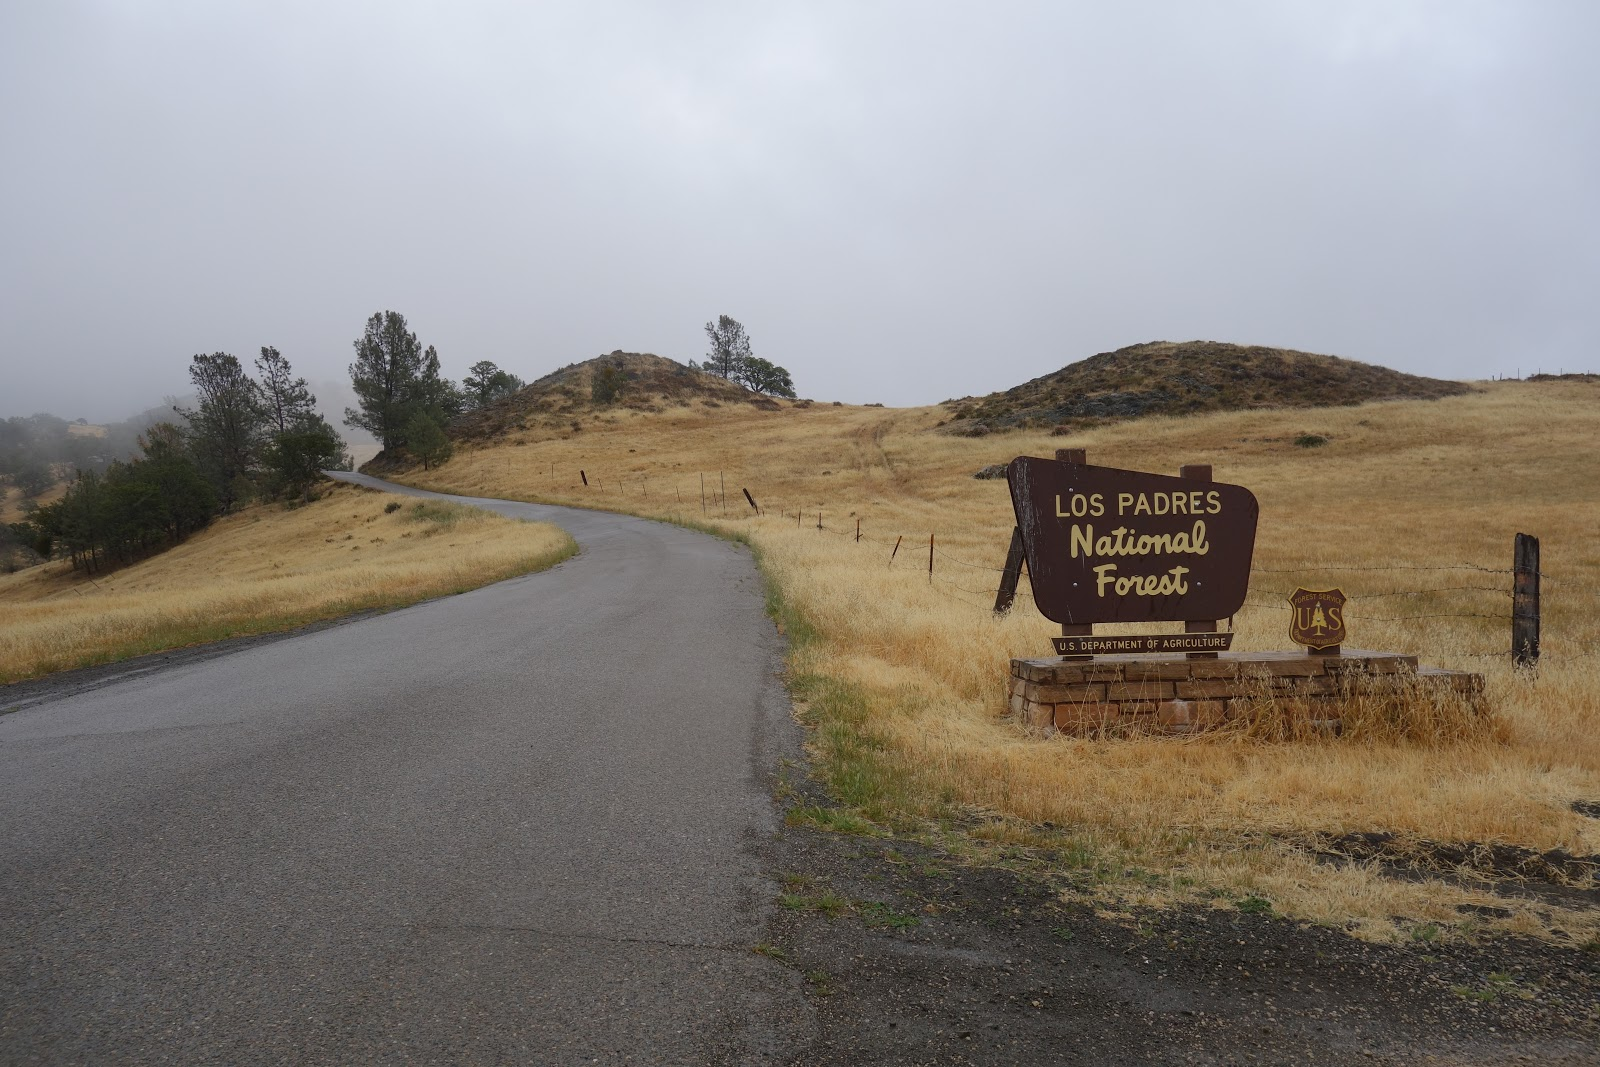 Cycling Figueroa Mountain Road west - Los Padres National Forest sign